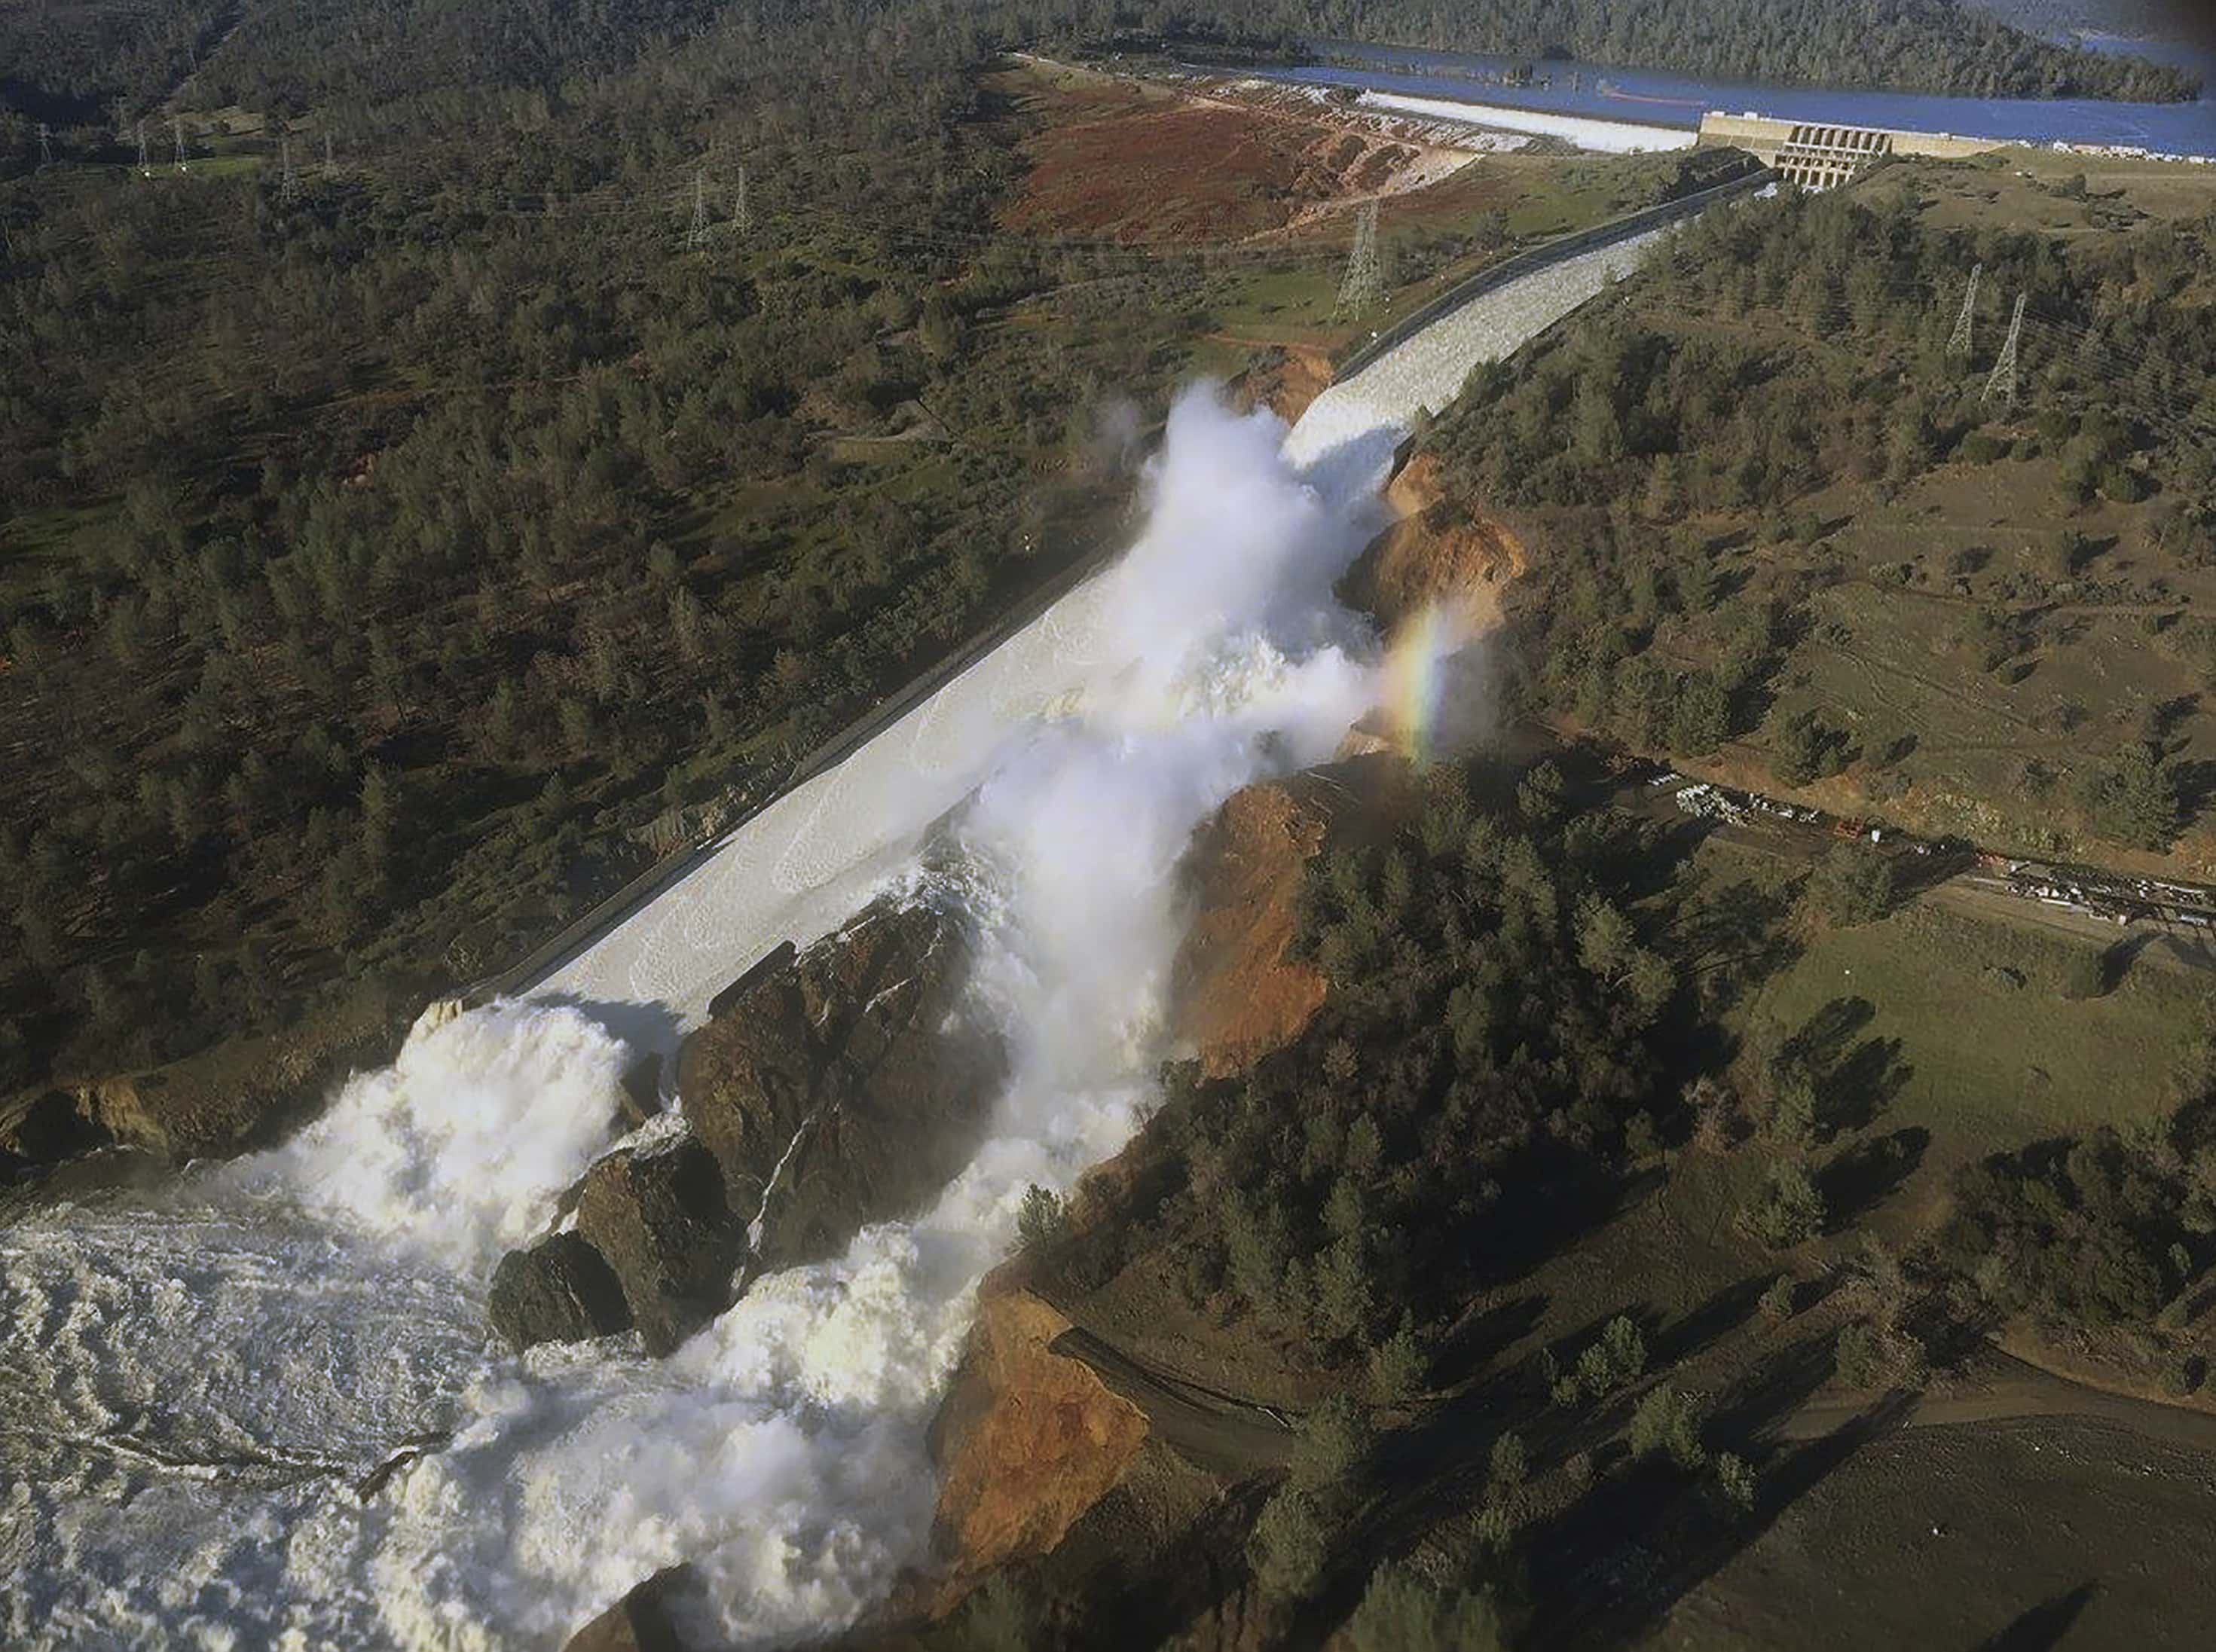 This Saturday, Feb. 11, 2017, aerial photo released by the California Department of Water Resources shows the damaged spillway with eroded hillside in Oroville, Calif. Water will continue to flow over an emergency spillway at the nation's tallest dam for another day or so, officials said Sunday. (William Croyle/California Department of Water Resources via AP)